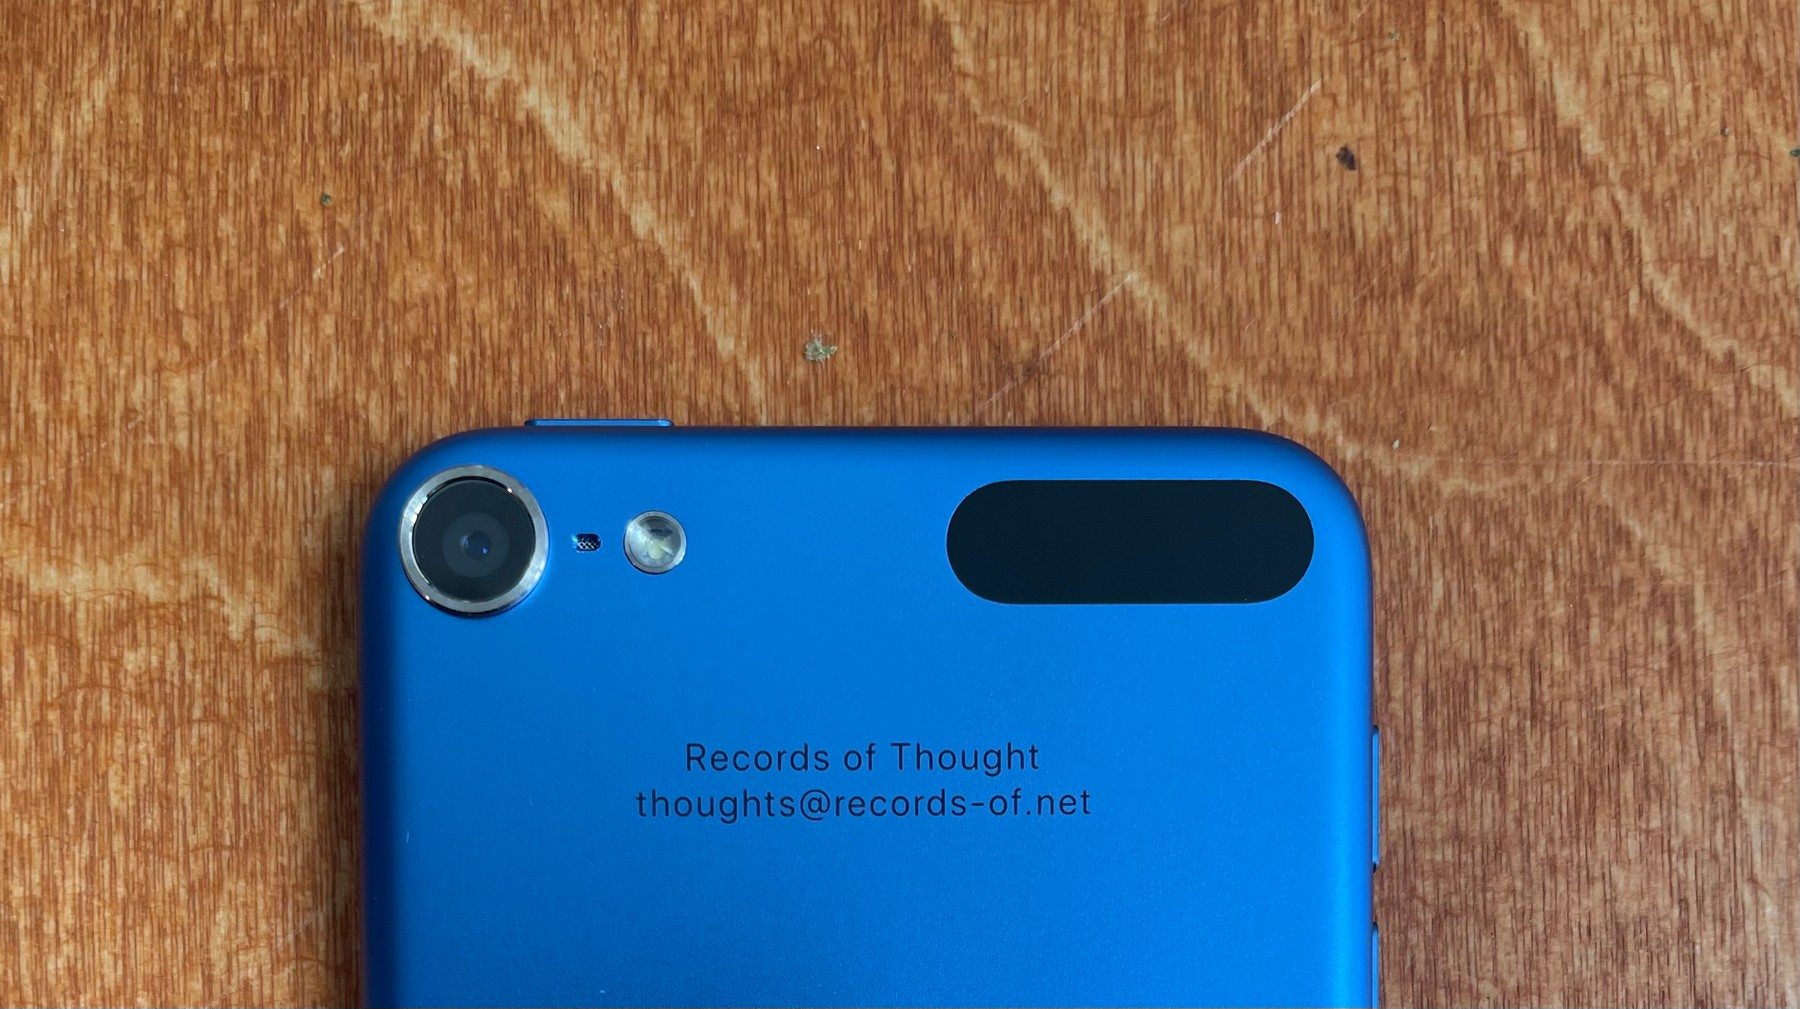 Temporary recoding device for records of thought